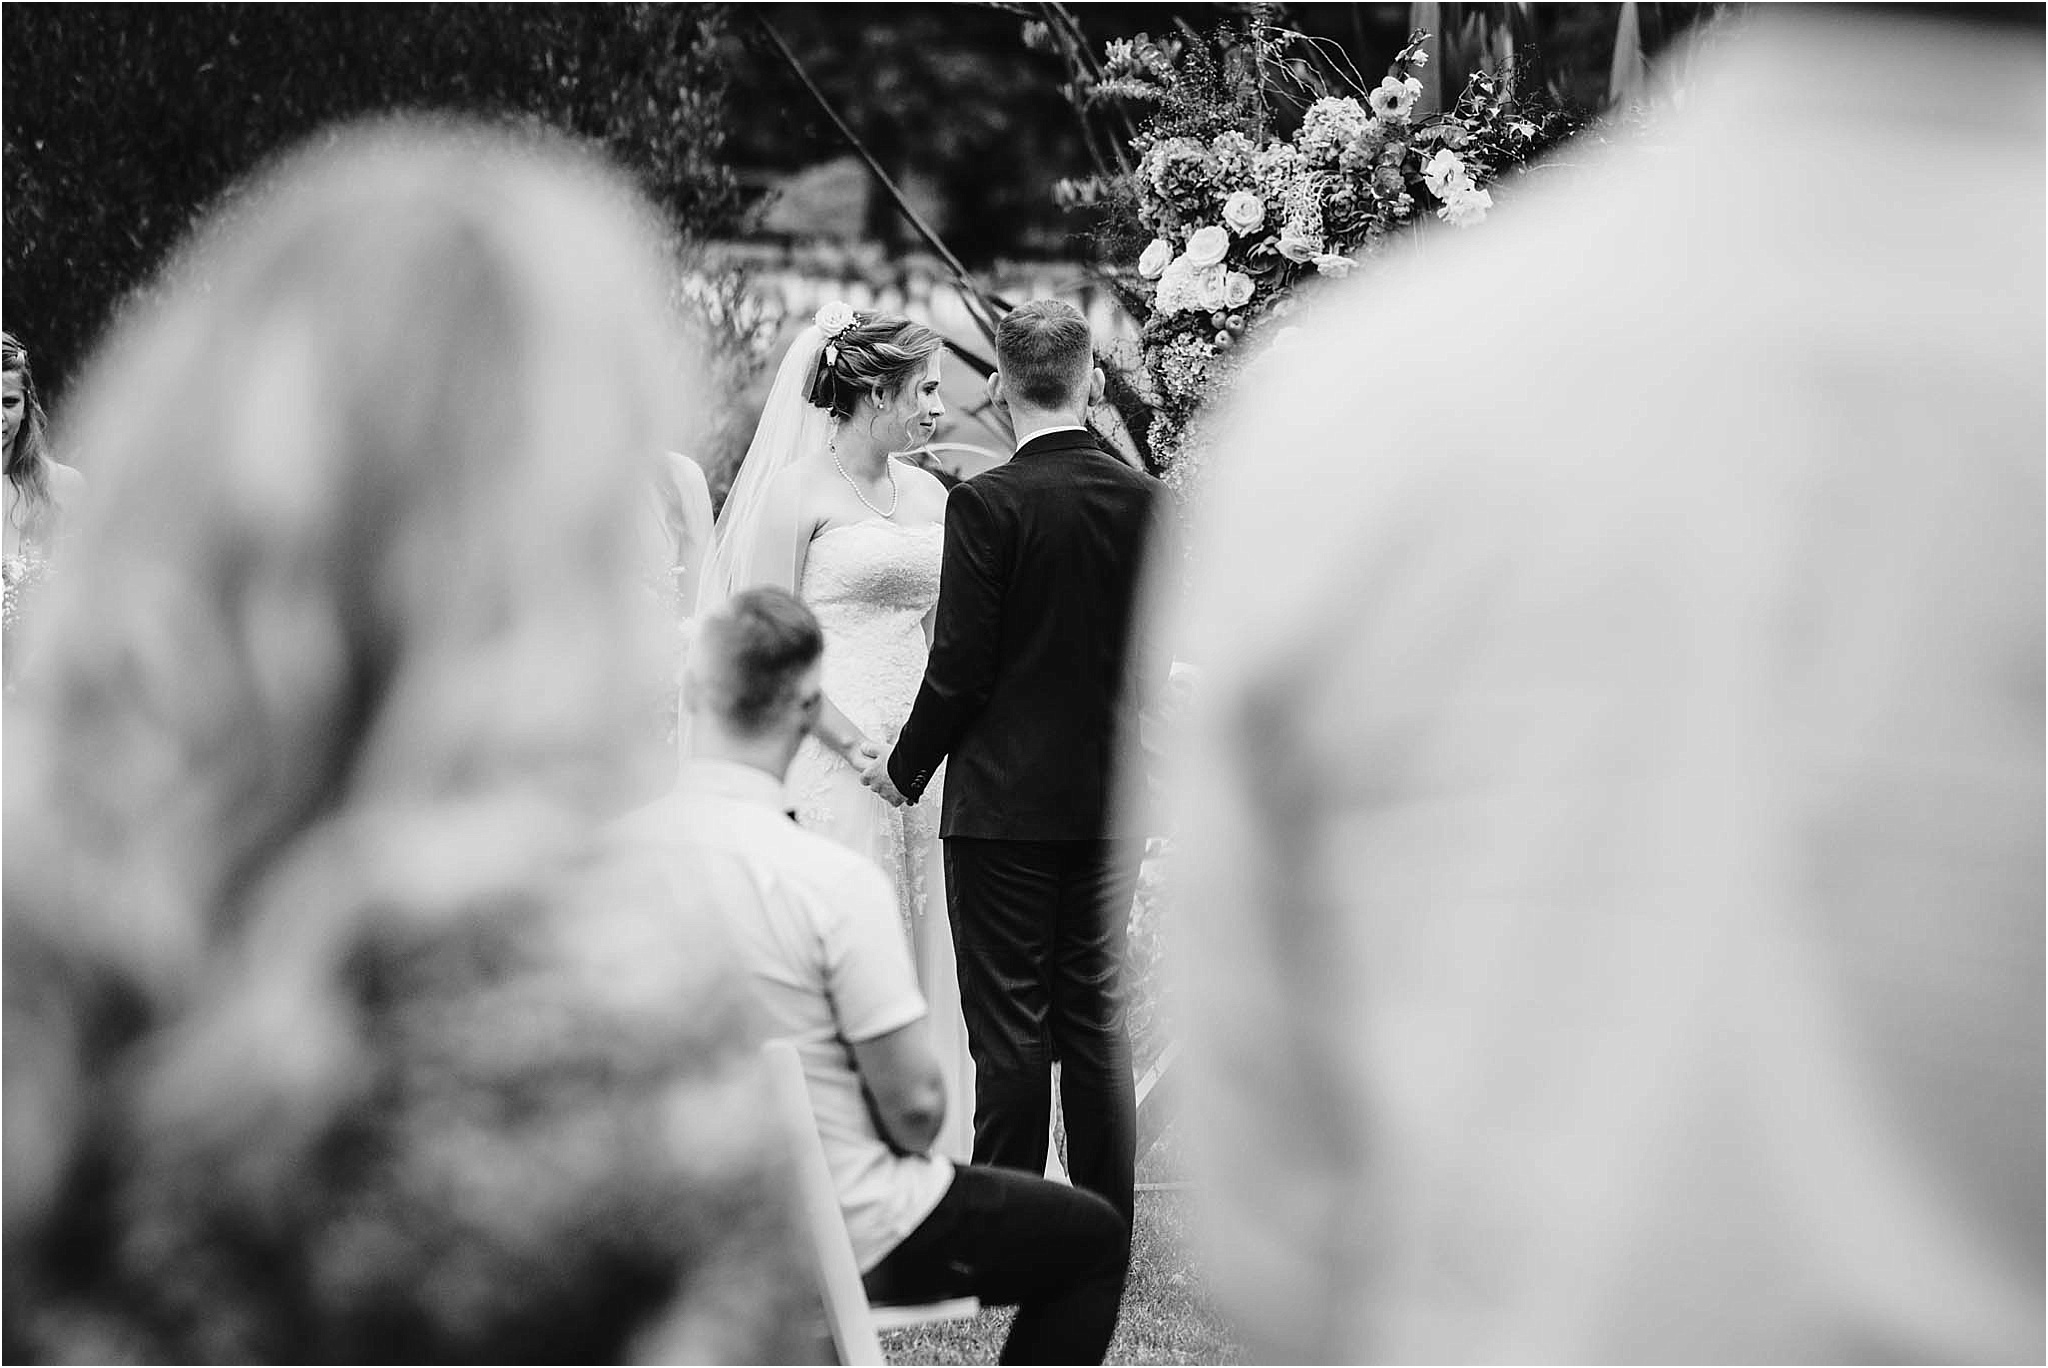 Auckland-Wedding-Photographer-Briana-Dave-Hunting-Lodge-Winery-Married_0047.jpg